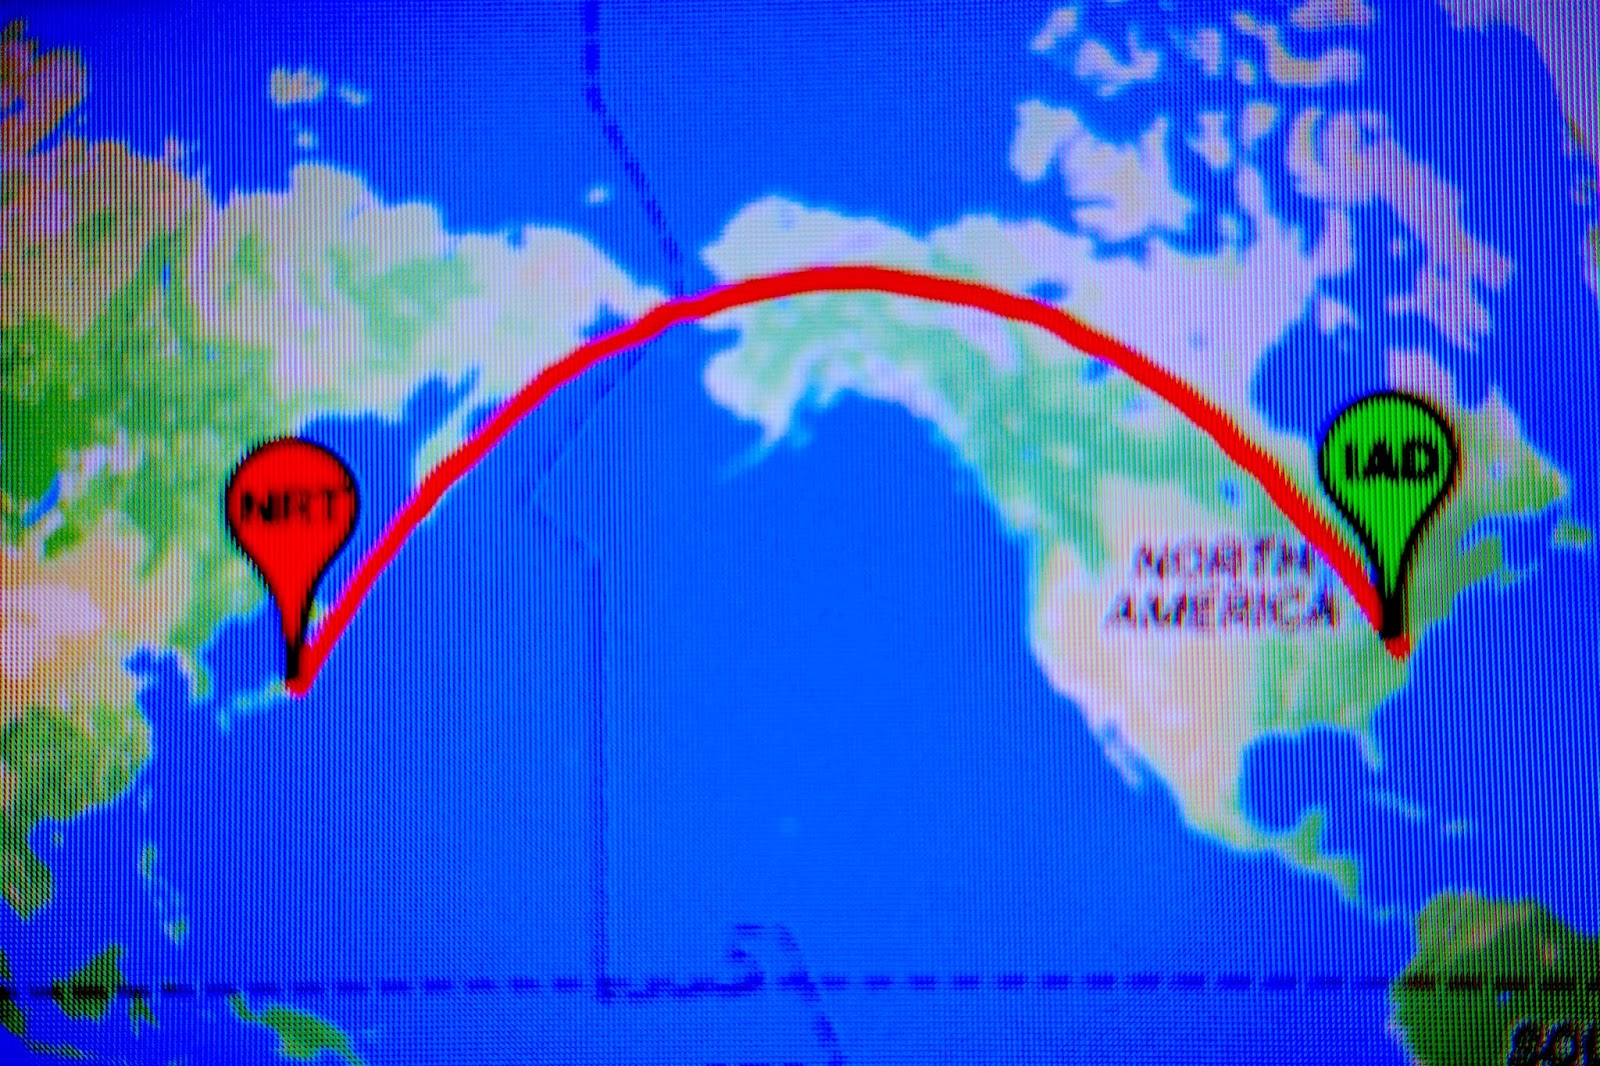 It S Almost 4 000 Miles From Honolulu To Tokyo While The Distance Roaches 5 If Going Washington D C So You Ask Why Is Only 6 771